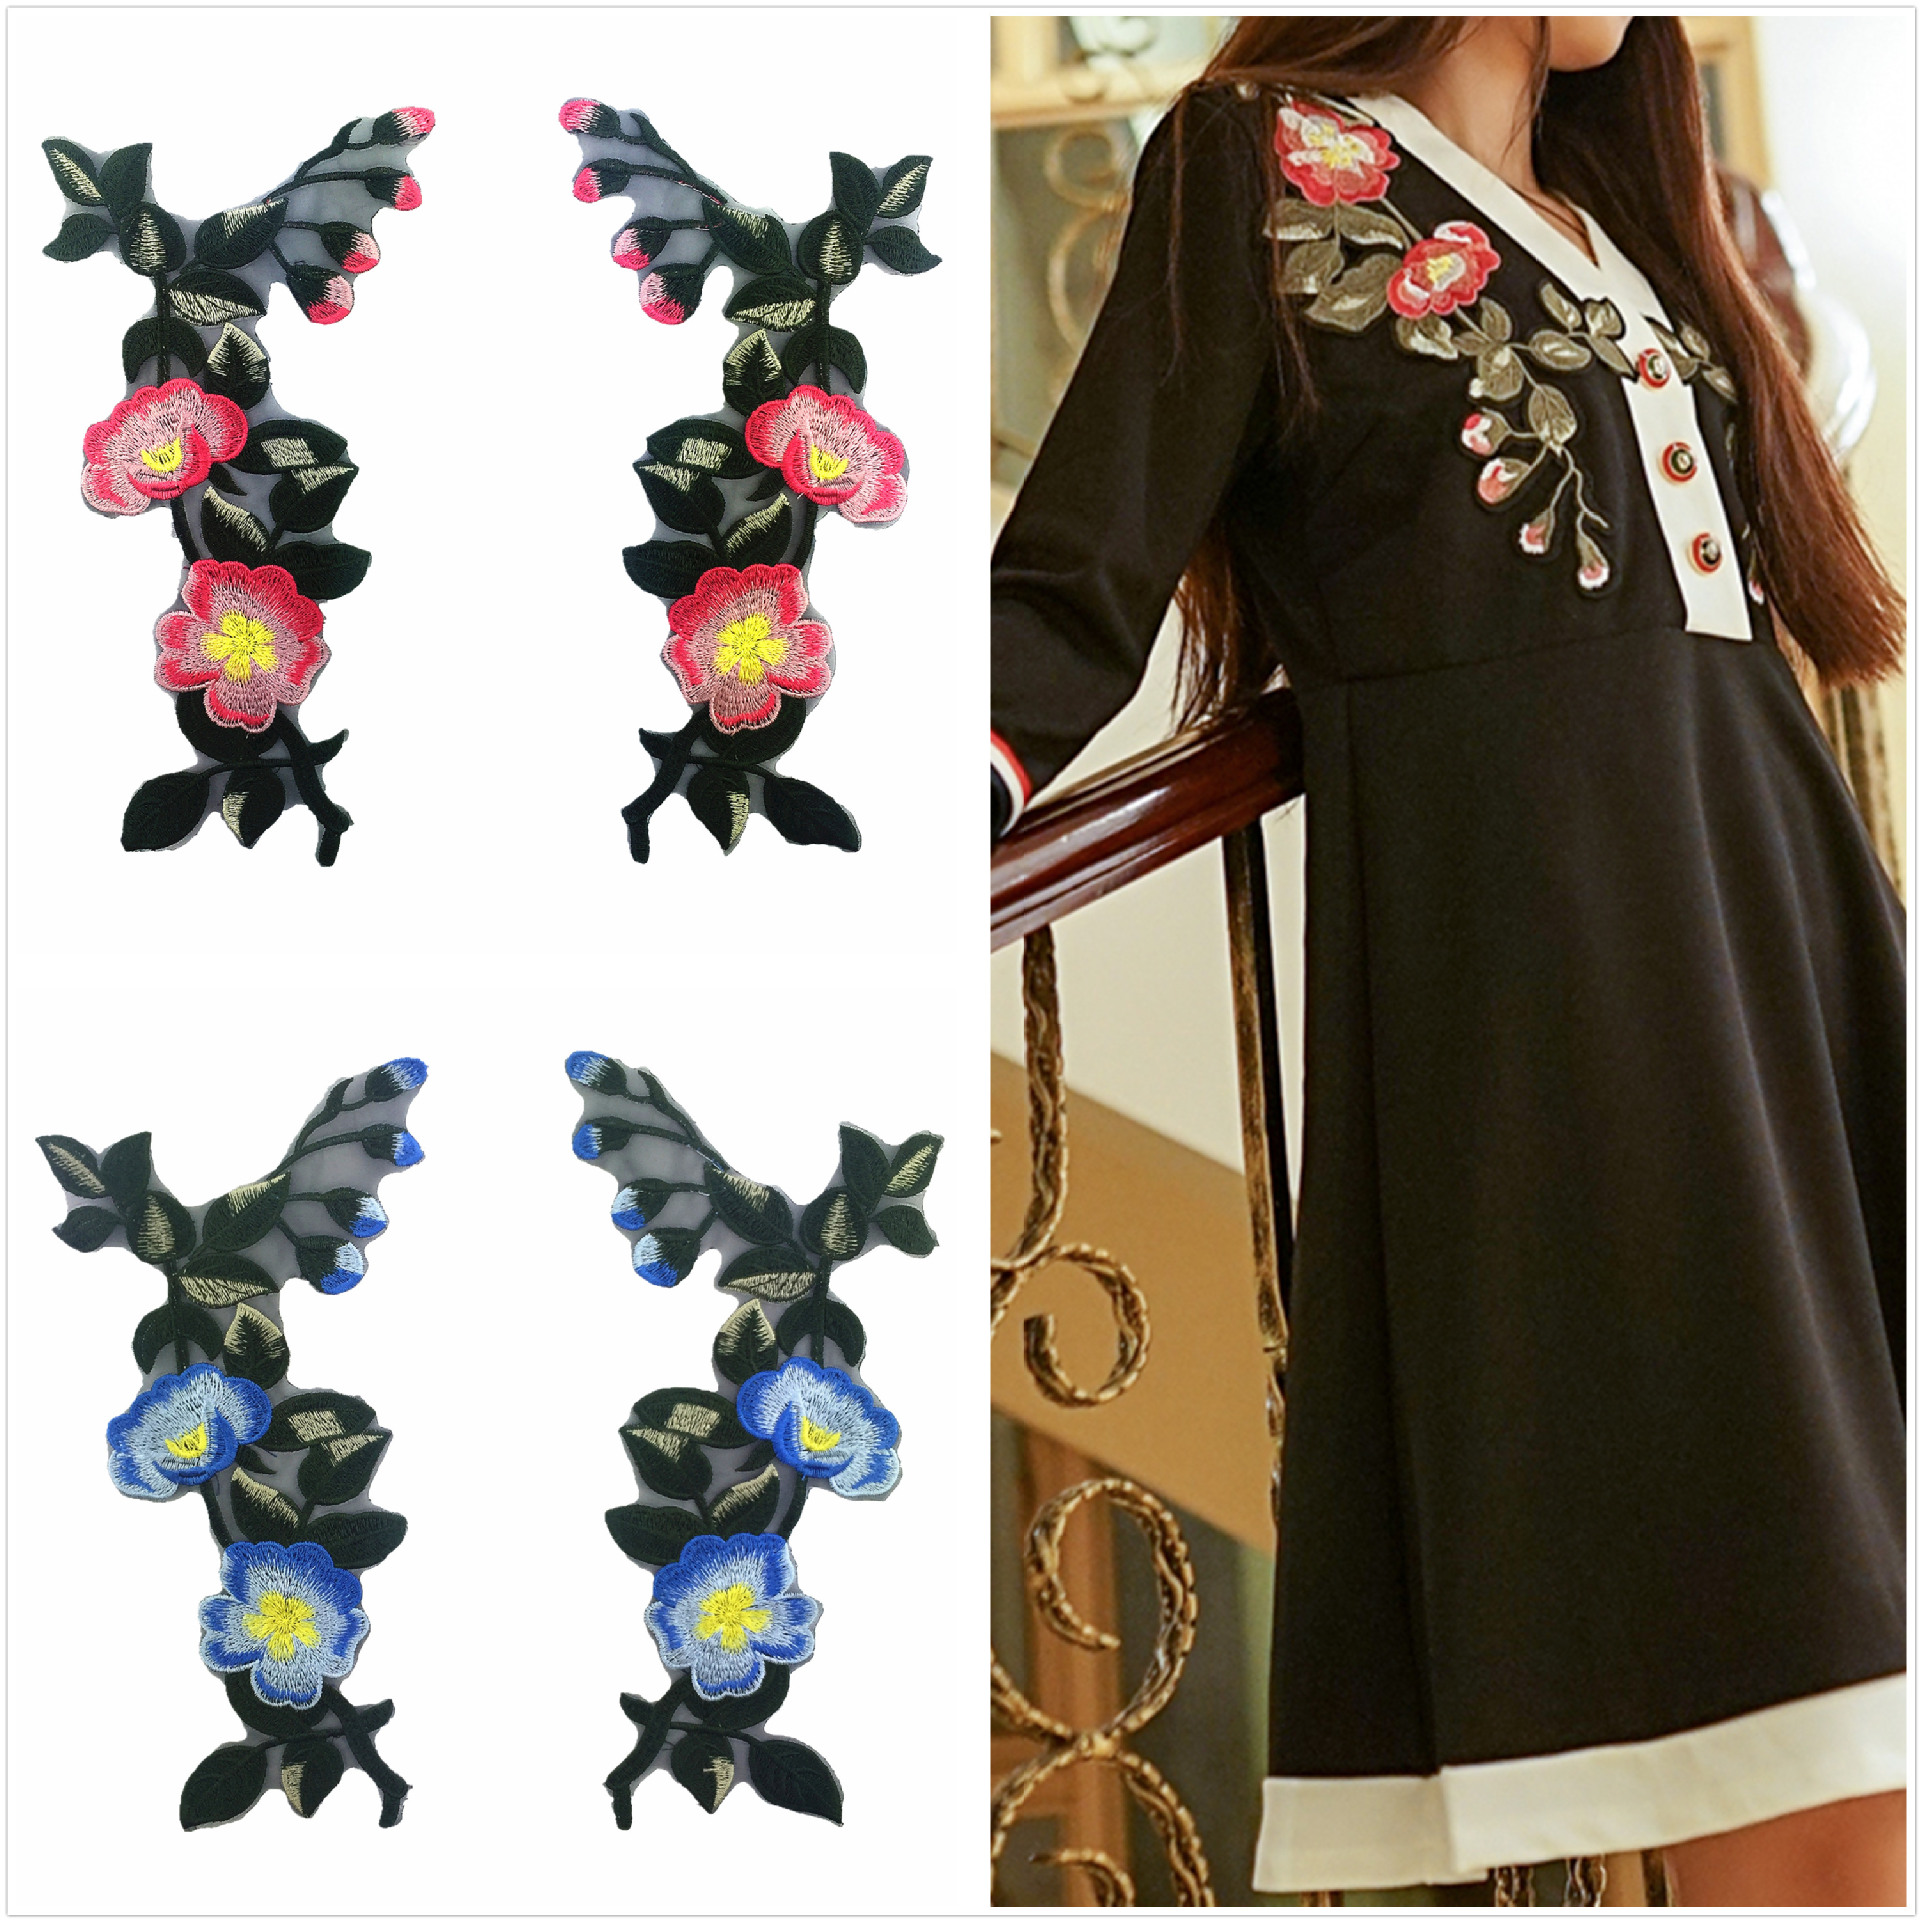 New High-end Screen Bottom Embroidery Collar Dance Sewing Garment Accessories Decals